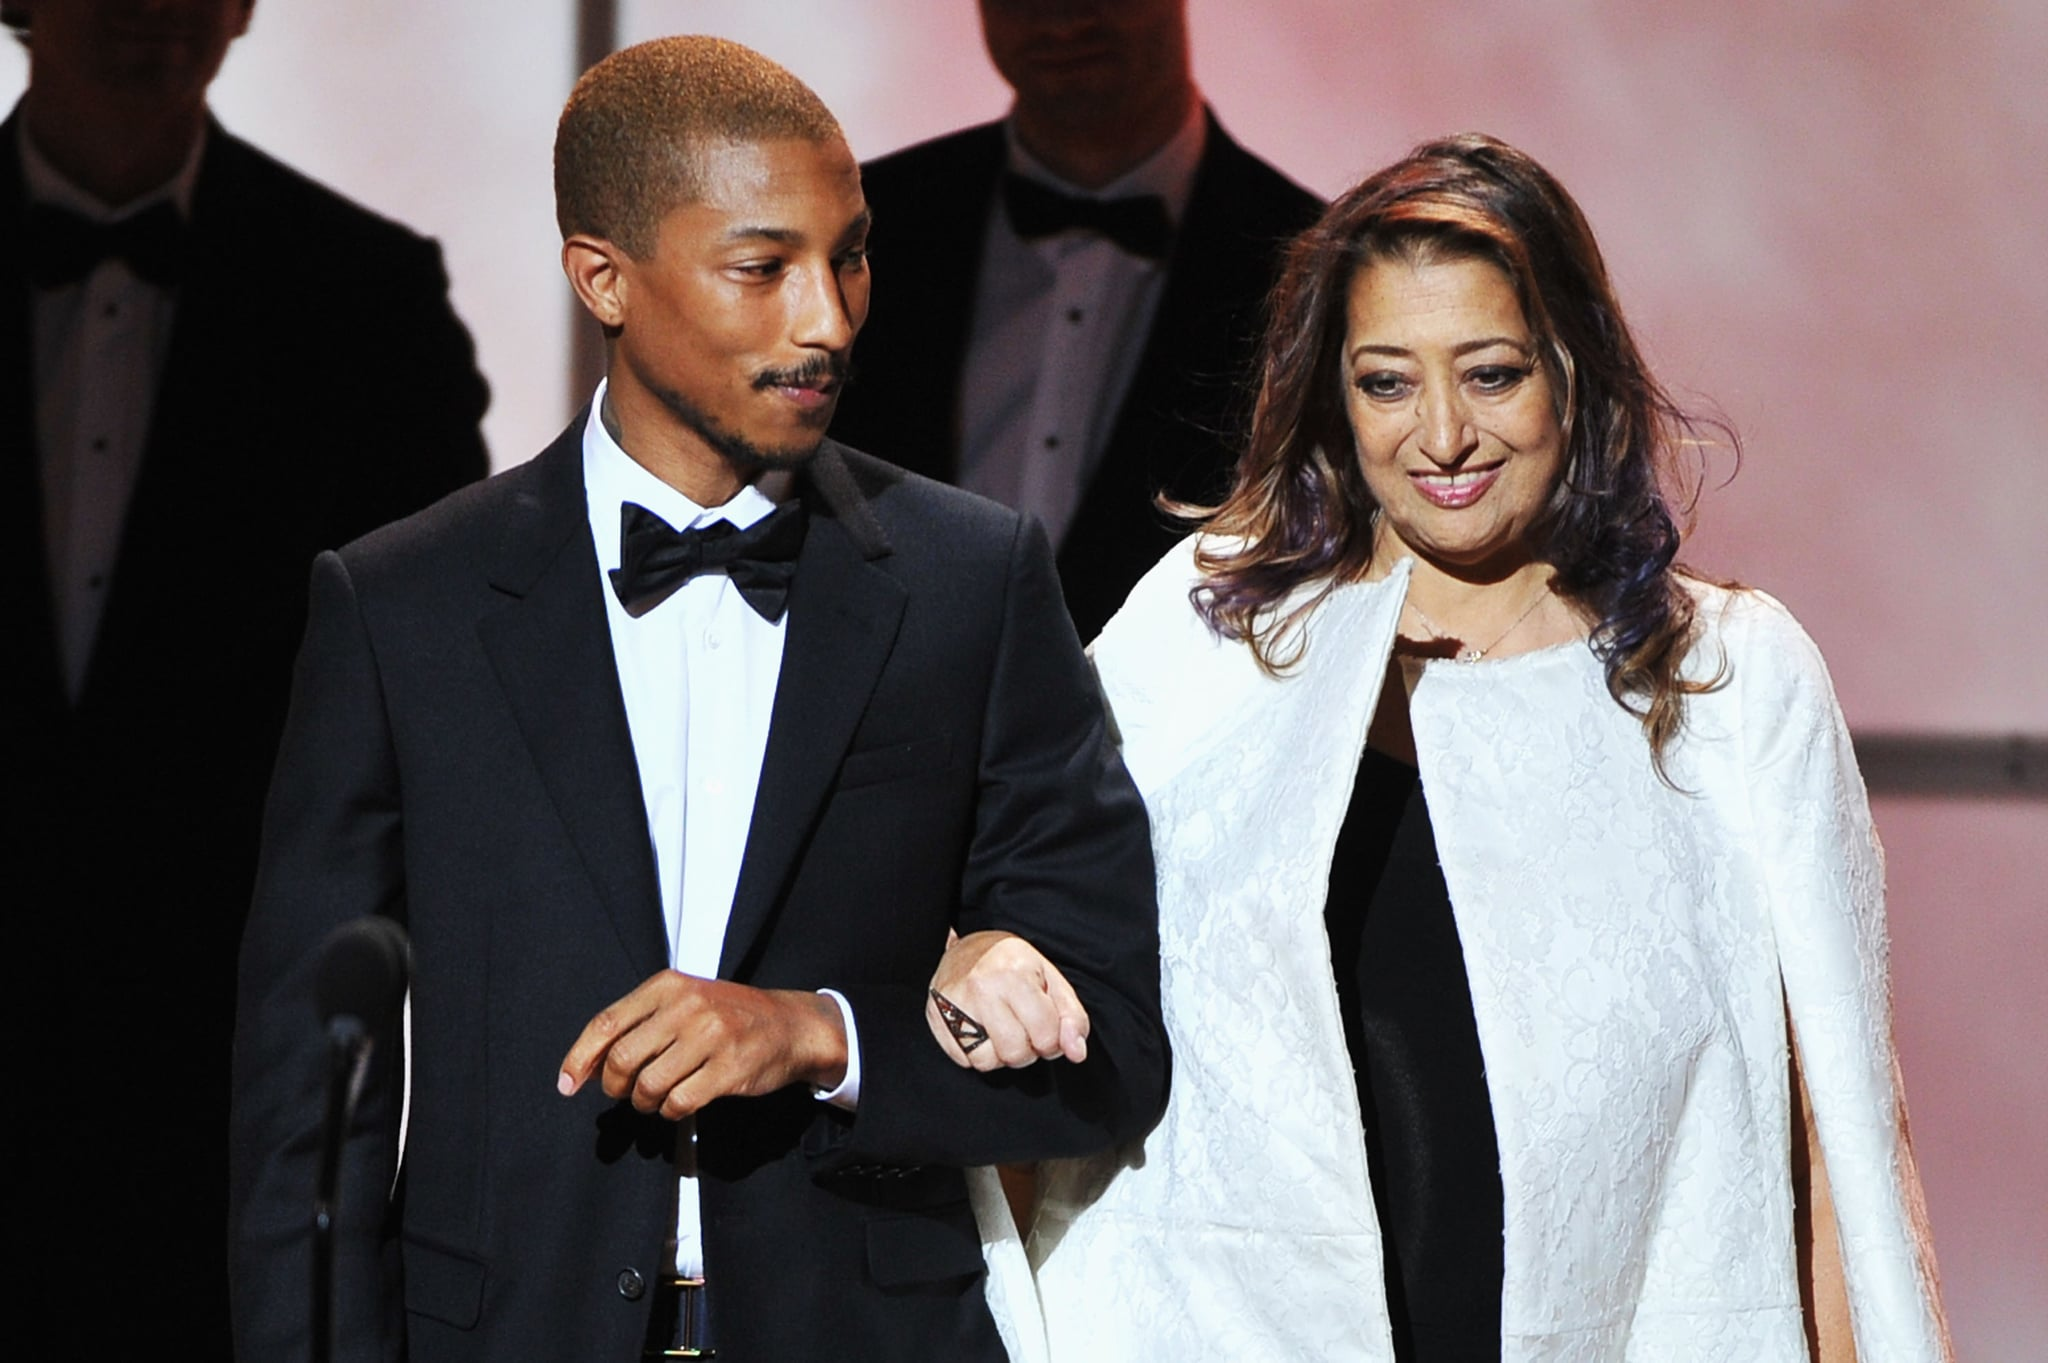 Pharrell Williams and Zaha Hadid attended the Glamour Women of the Year Awards in NYC.